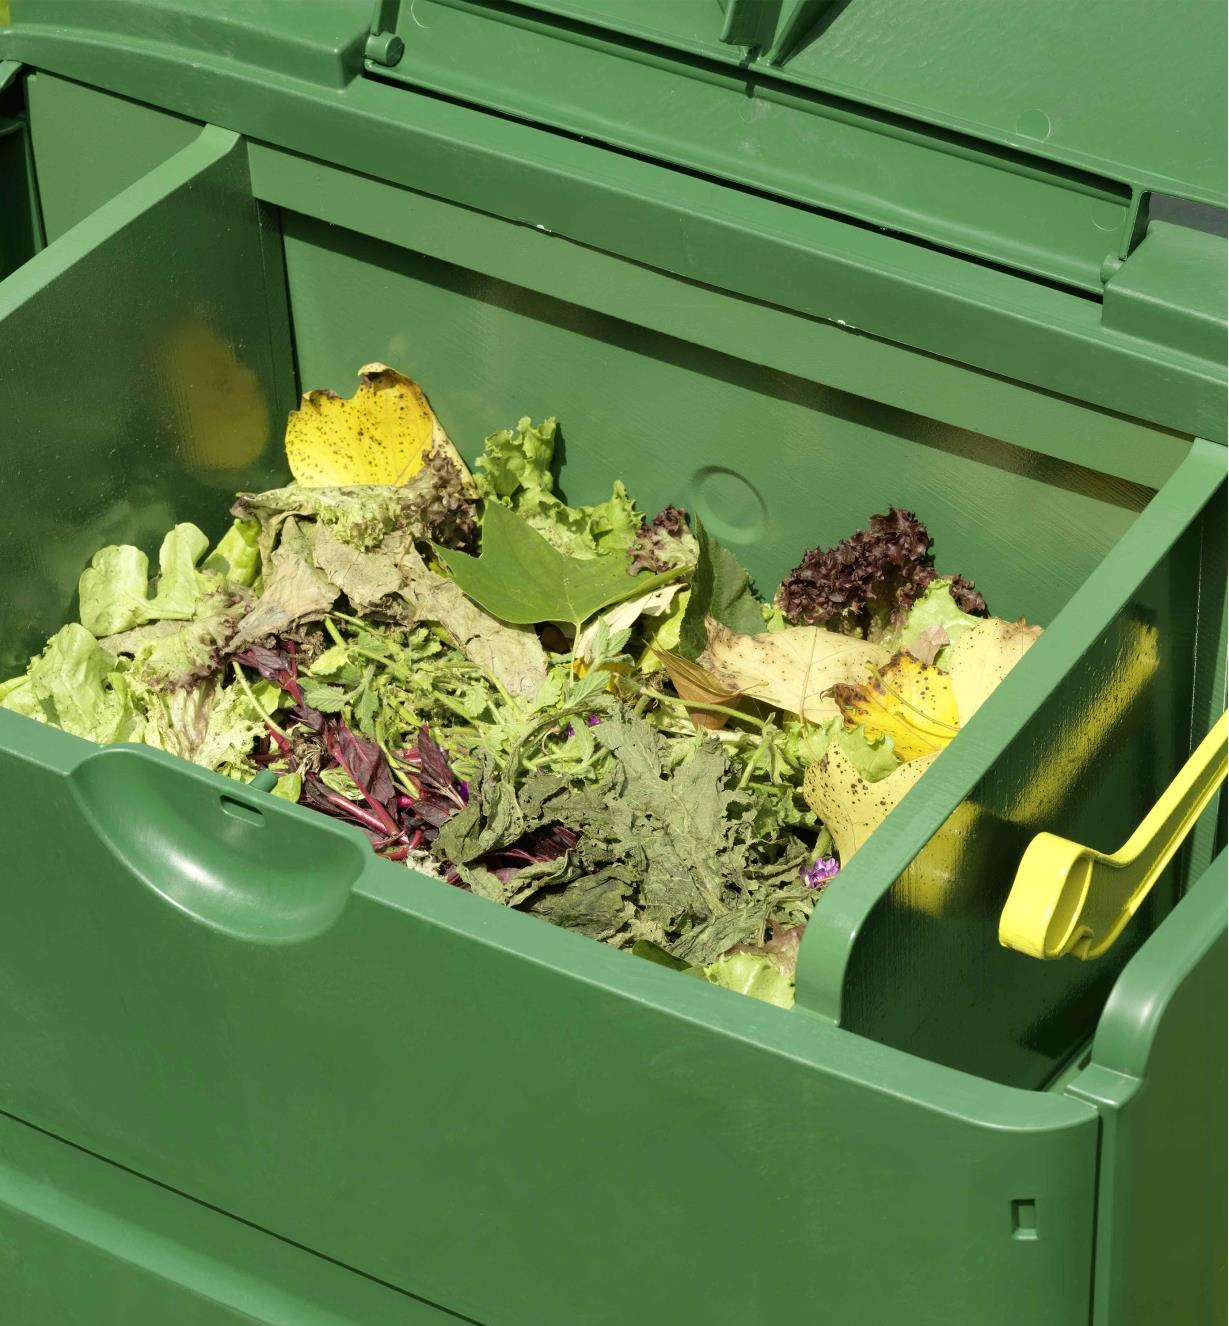 Top compartment filled with food waste